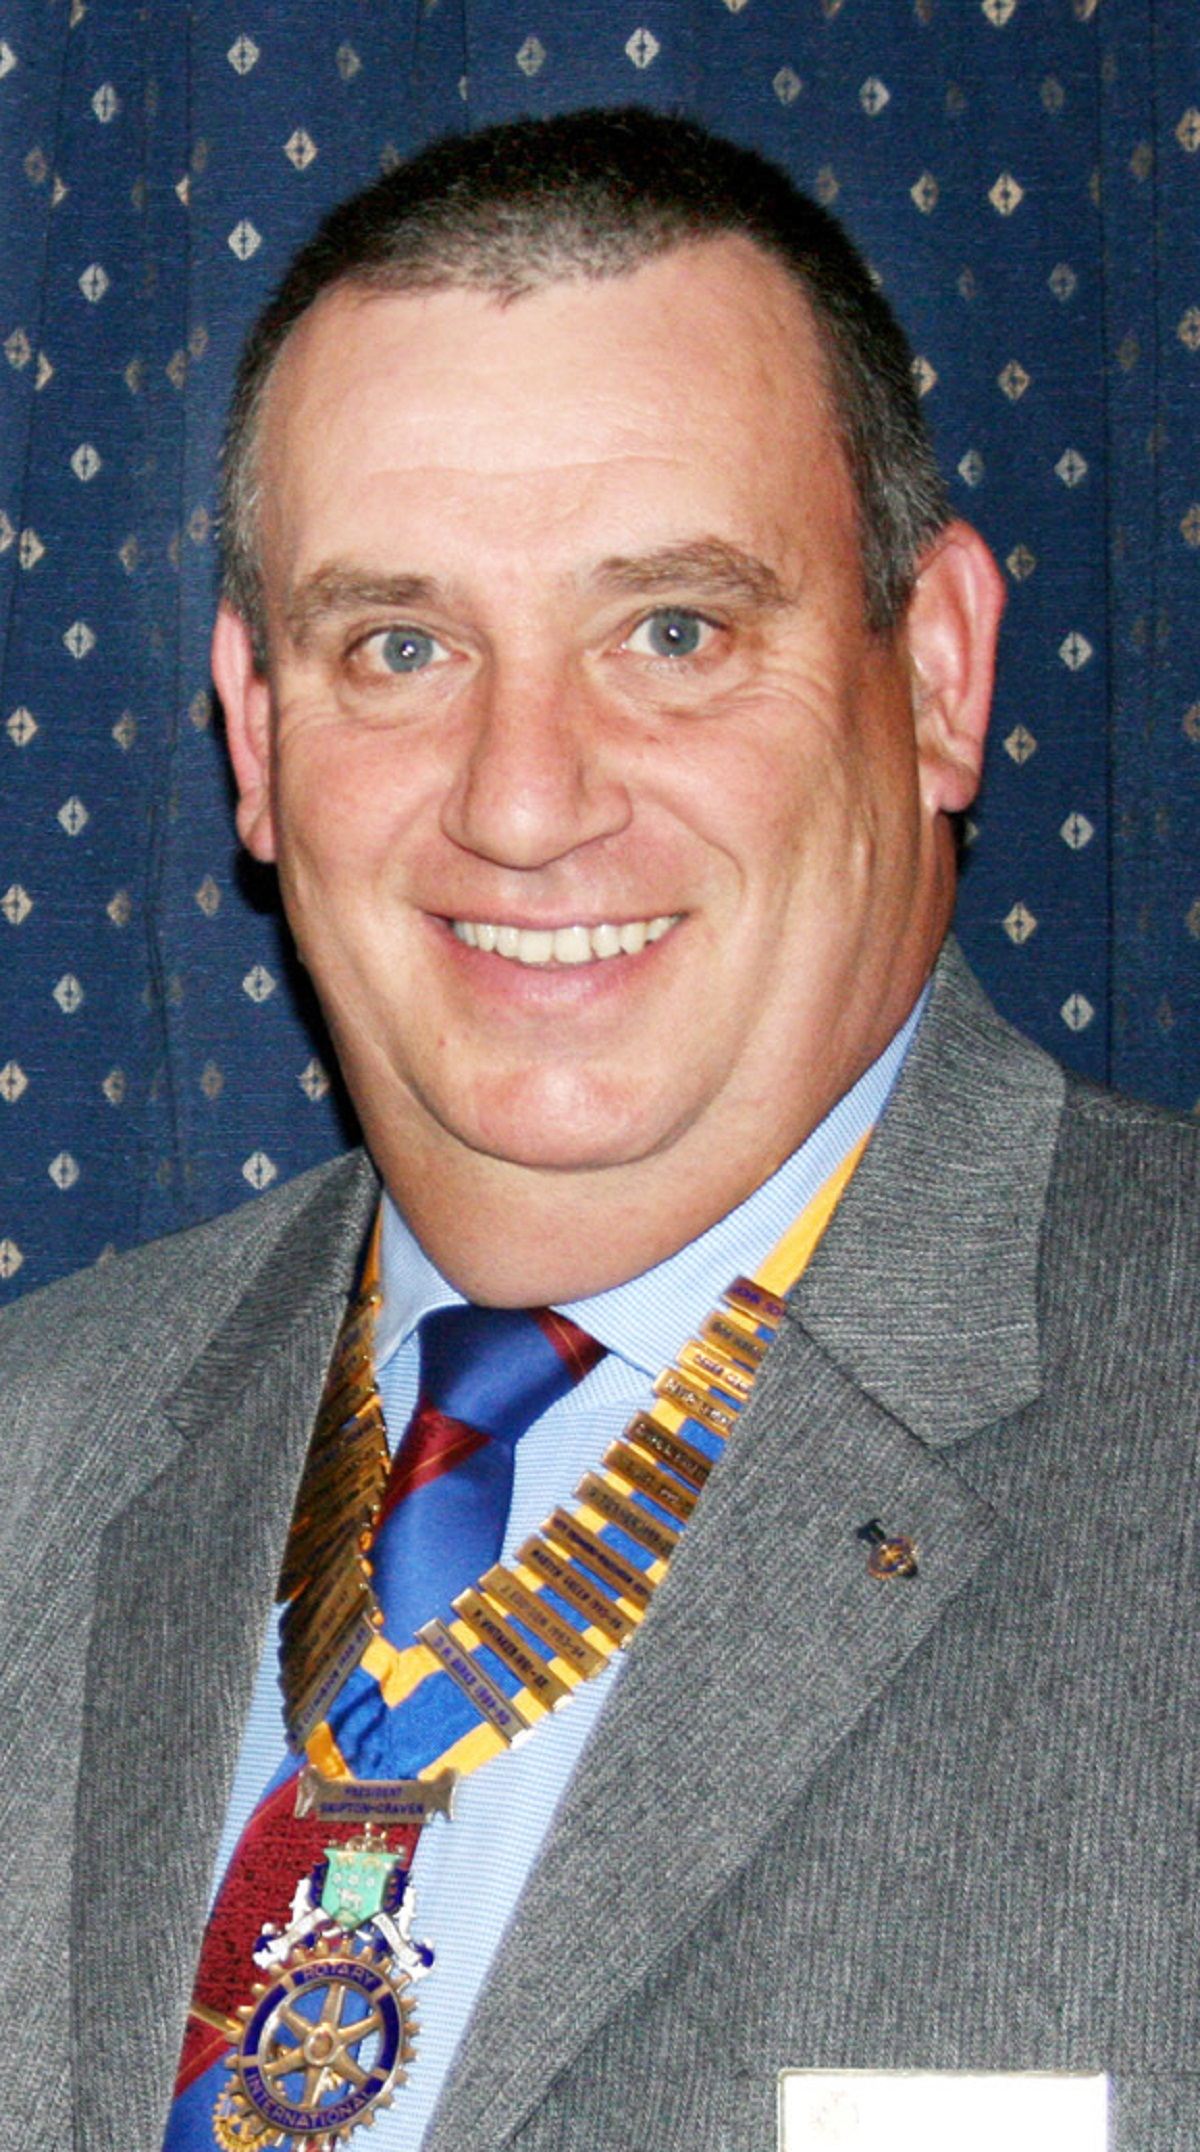 Bob Marchant, president of Rotary Club of Skipton Craven